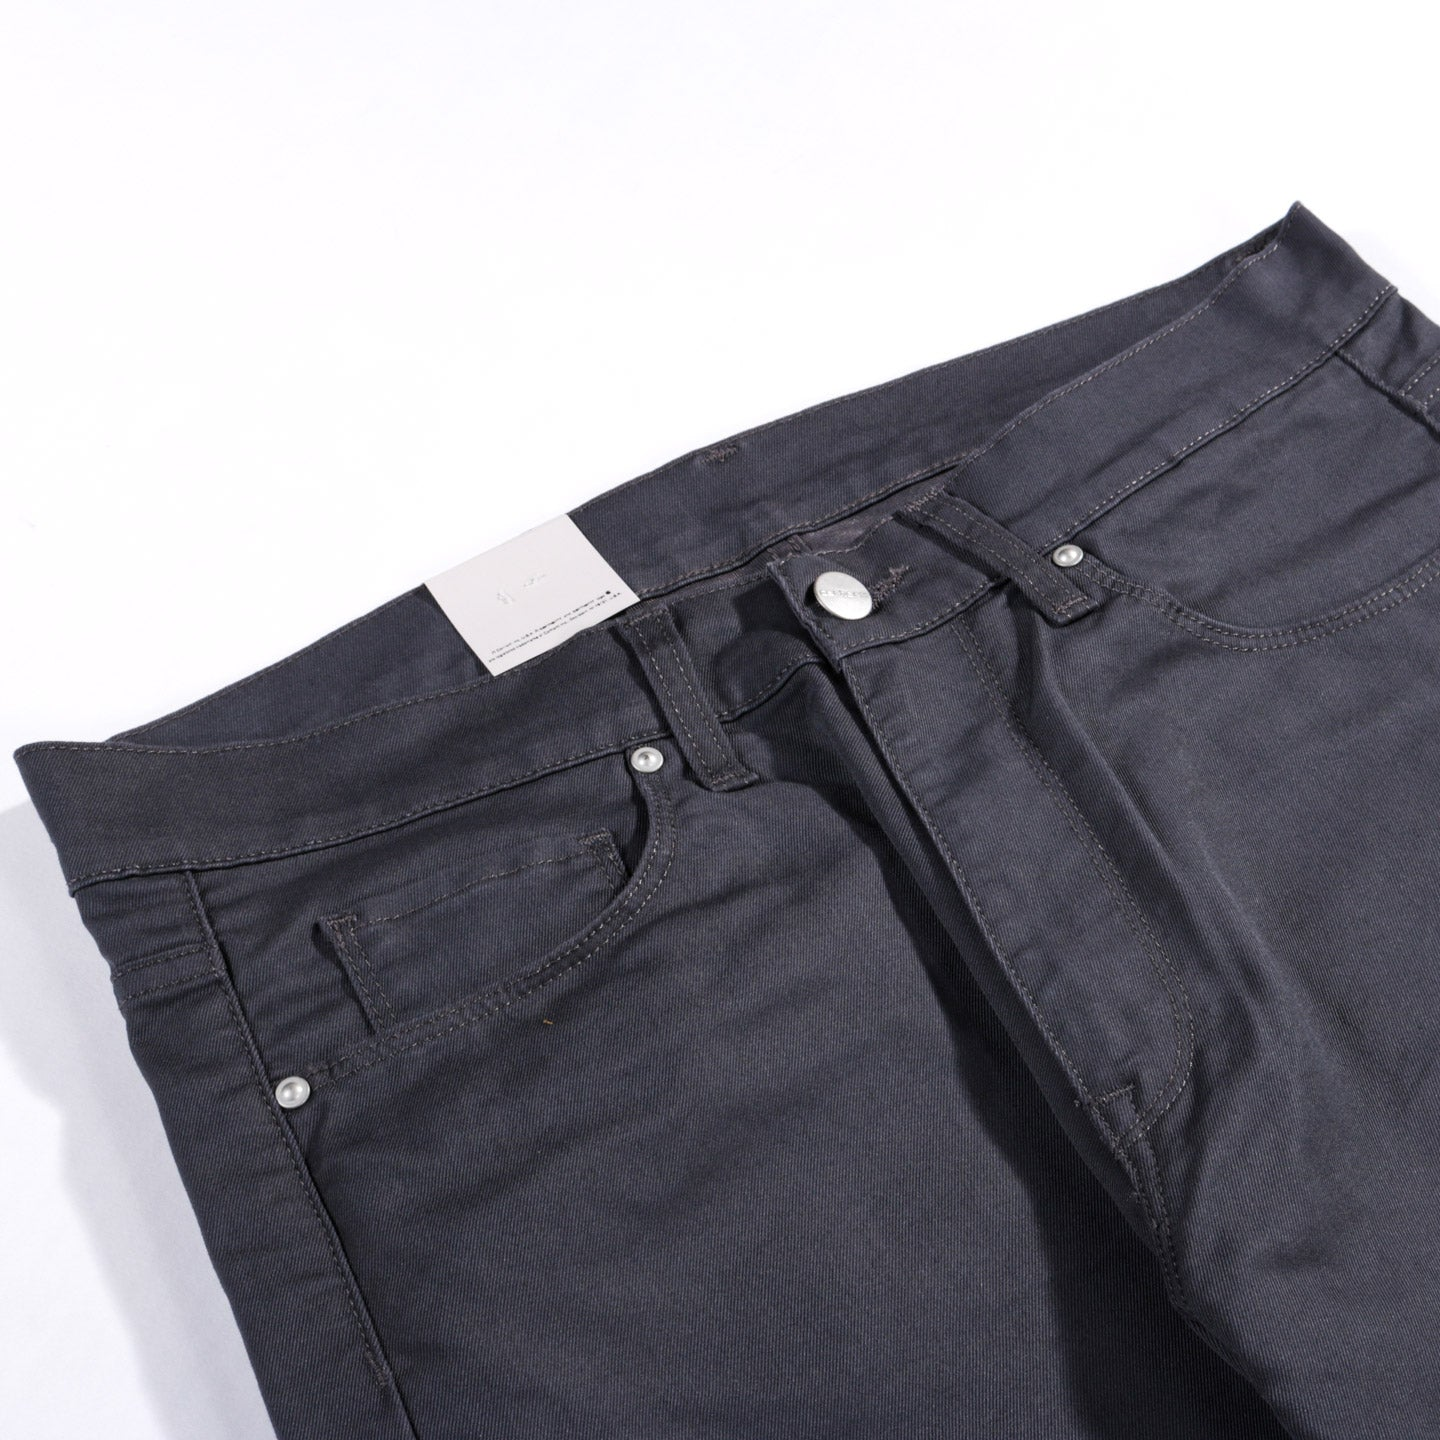 CARHARTT WIP VICIOUS PANT 'LAMAR' STRETCH TWILL BLACKSMITH